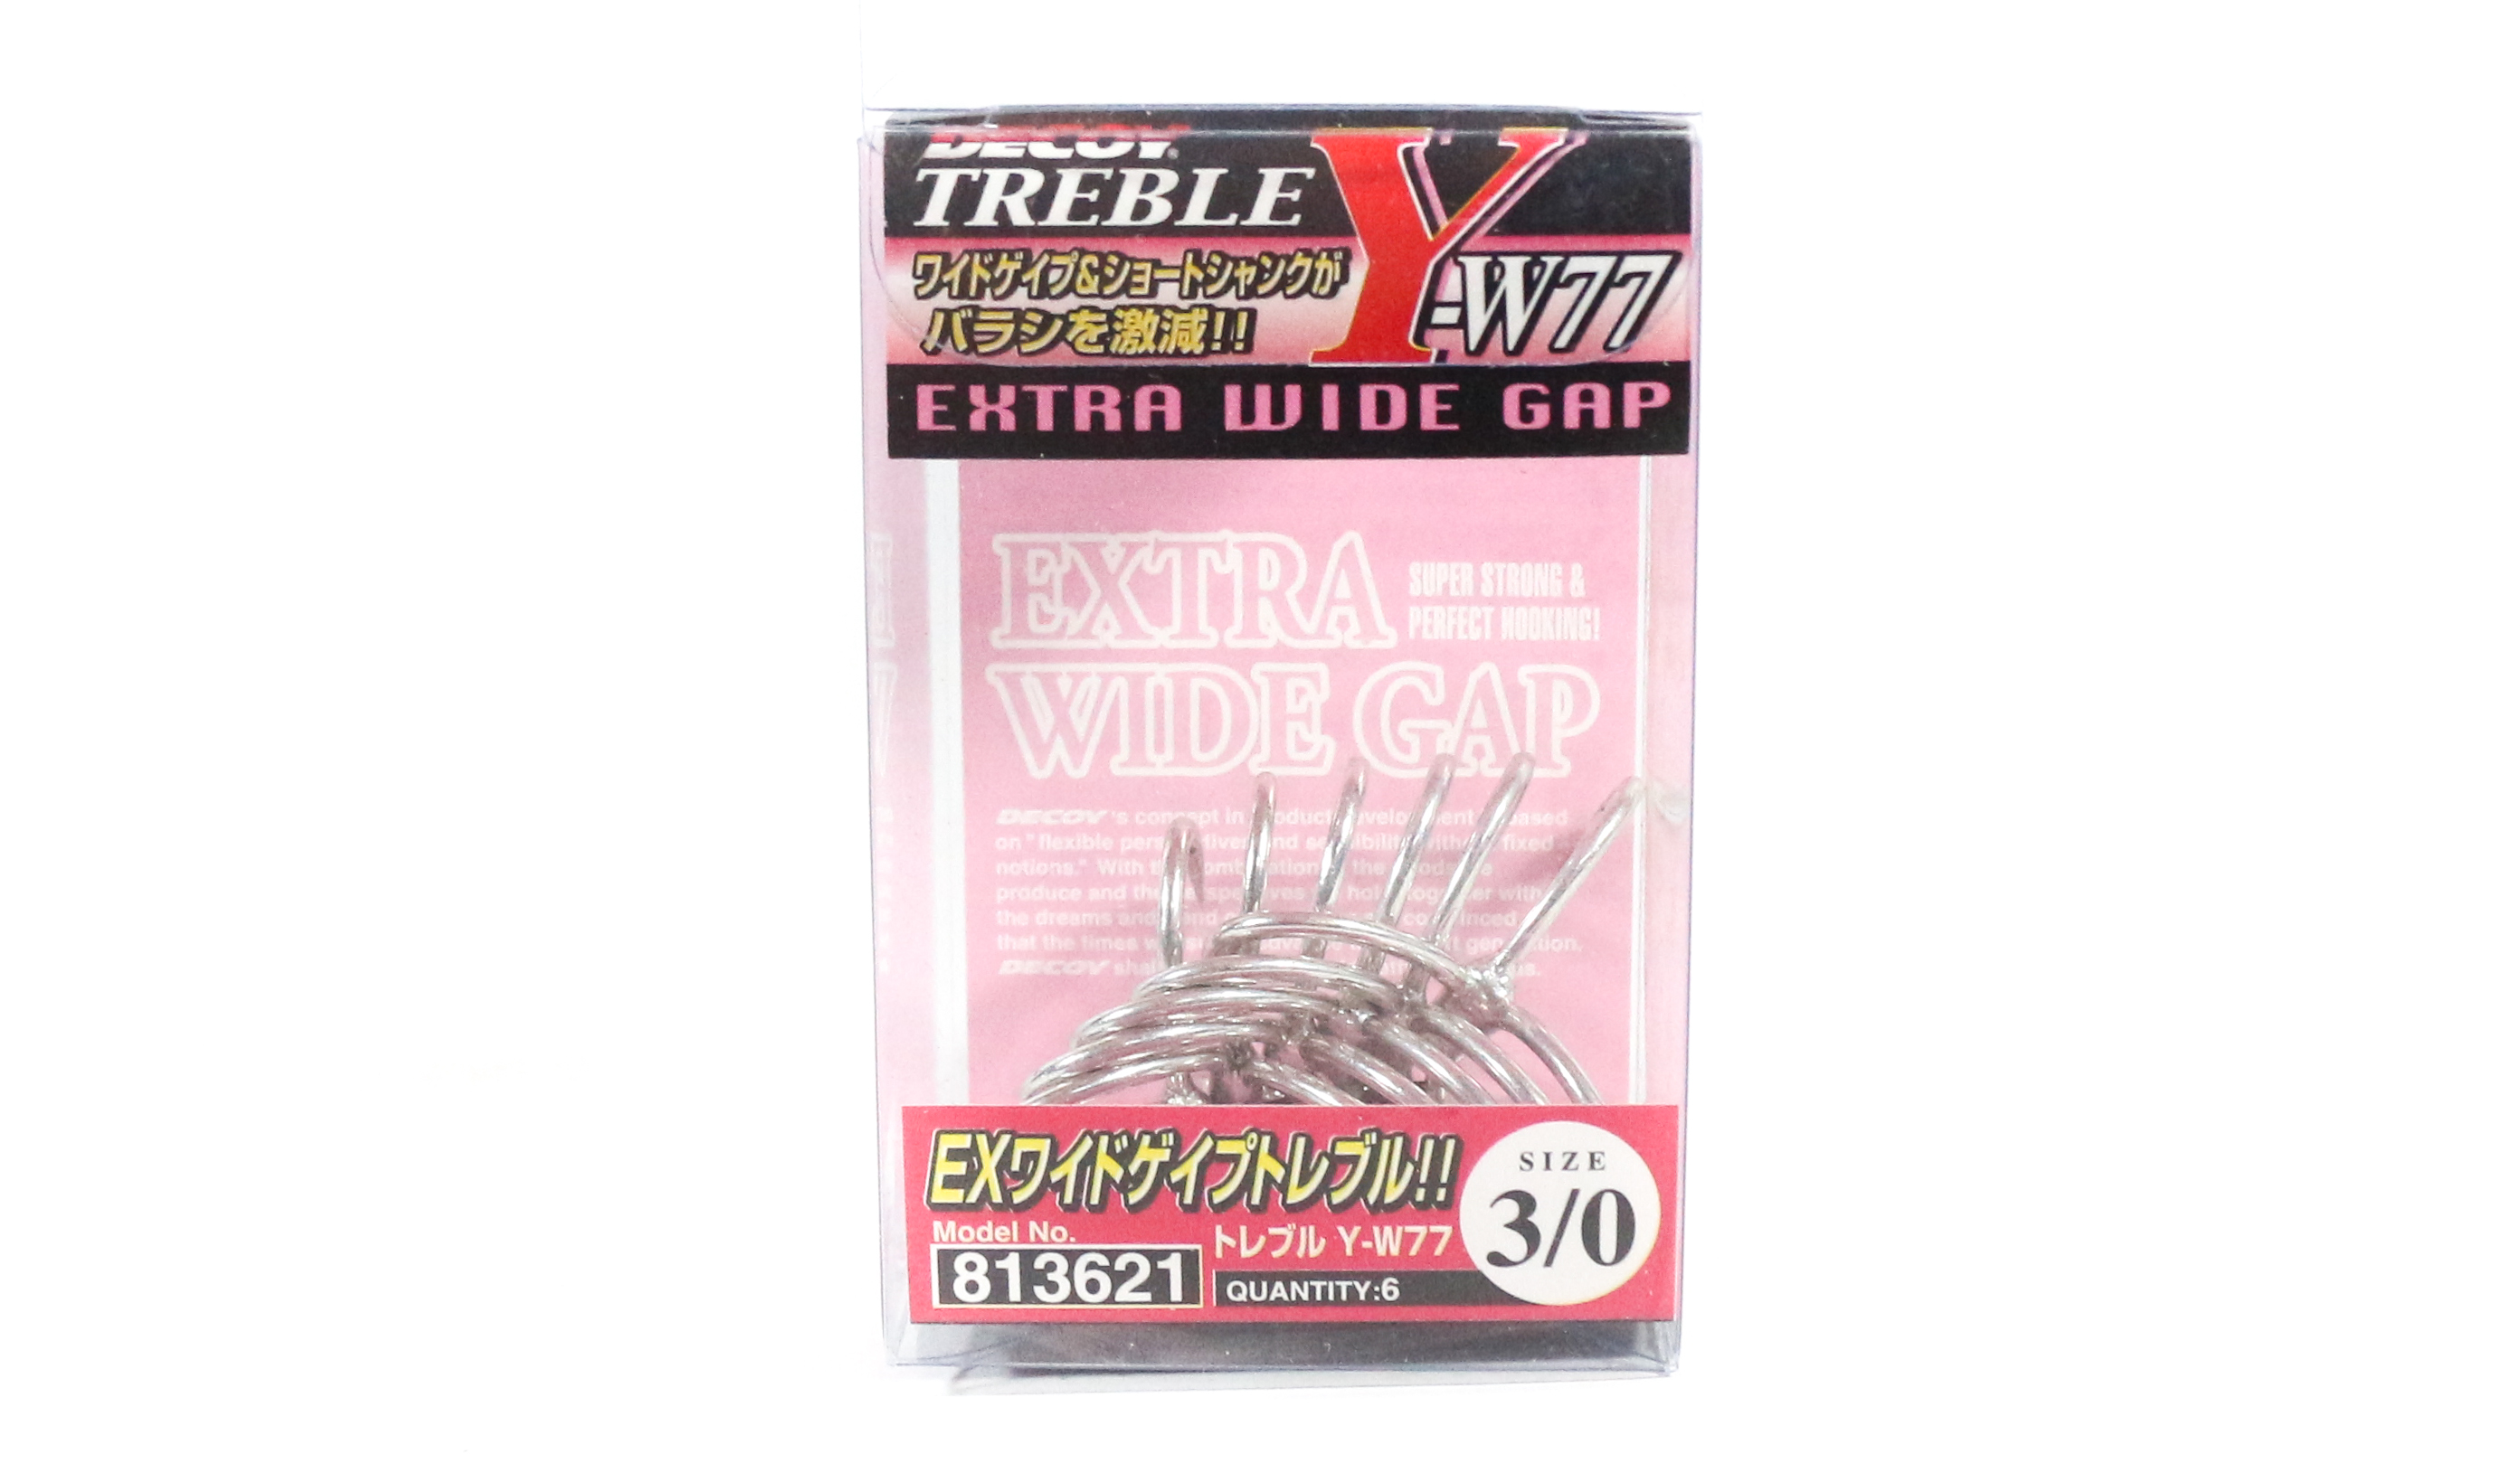 Decoy Y-W77 Treble Hook Wide Gap Extra Strong Hooks Size 3/0 (3621)